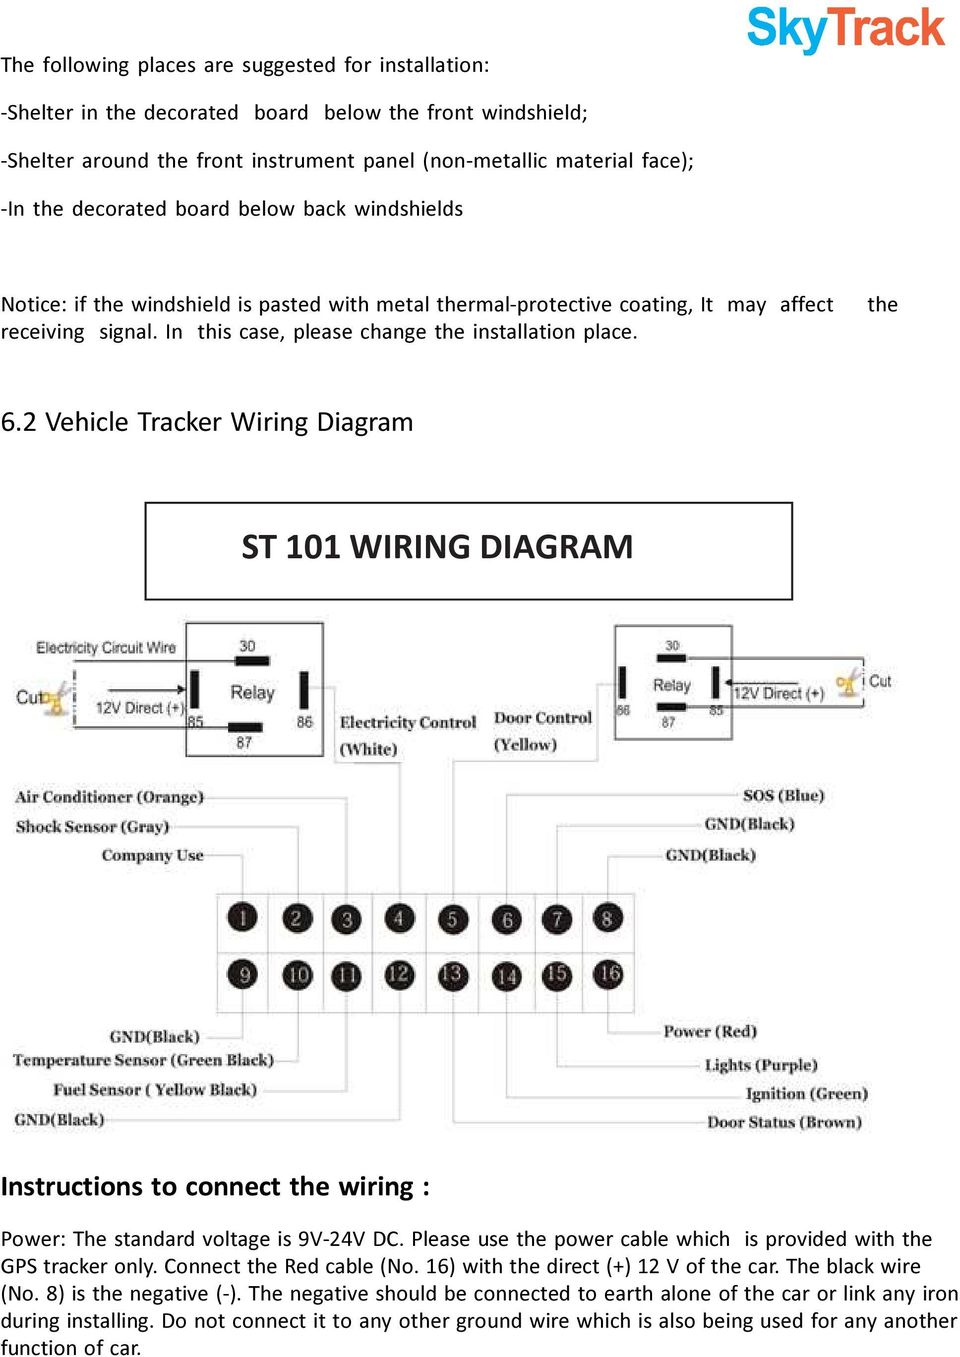 Gps Vehicle Tracker User Manual Version 20 Model St 101 V20 Wiring Diagram The 62 Instructions To Connect